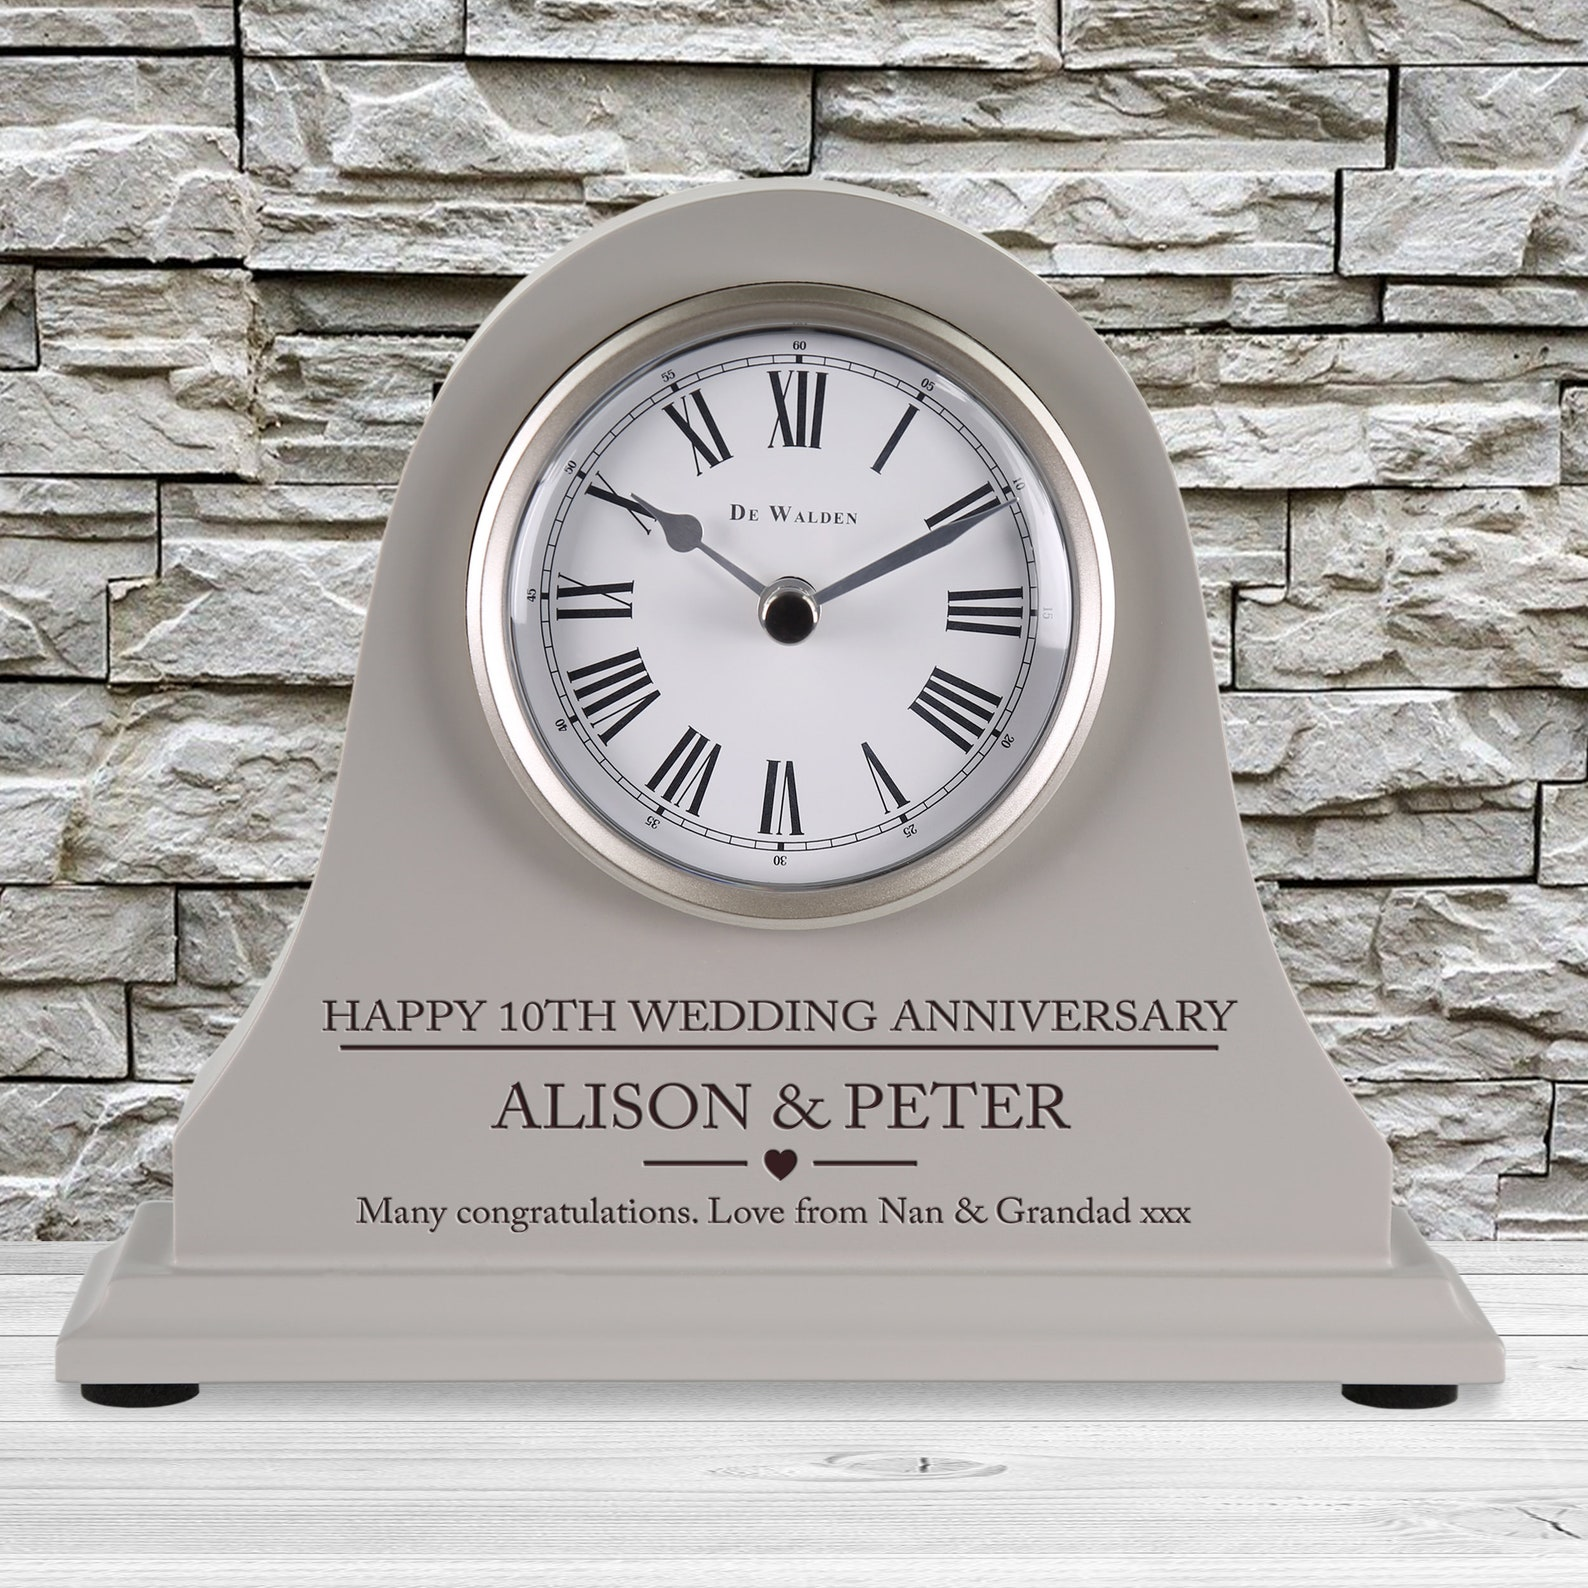 Personalised engraved mantel clock